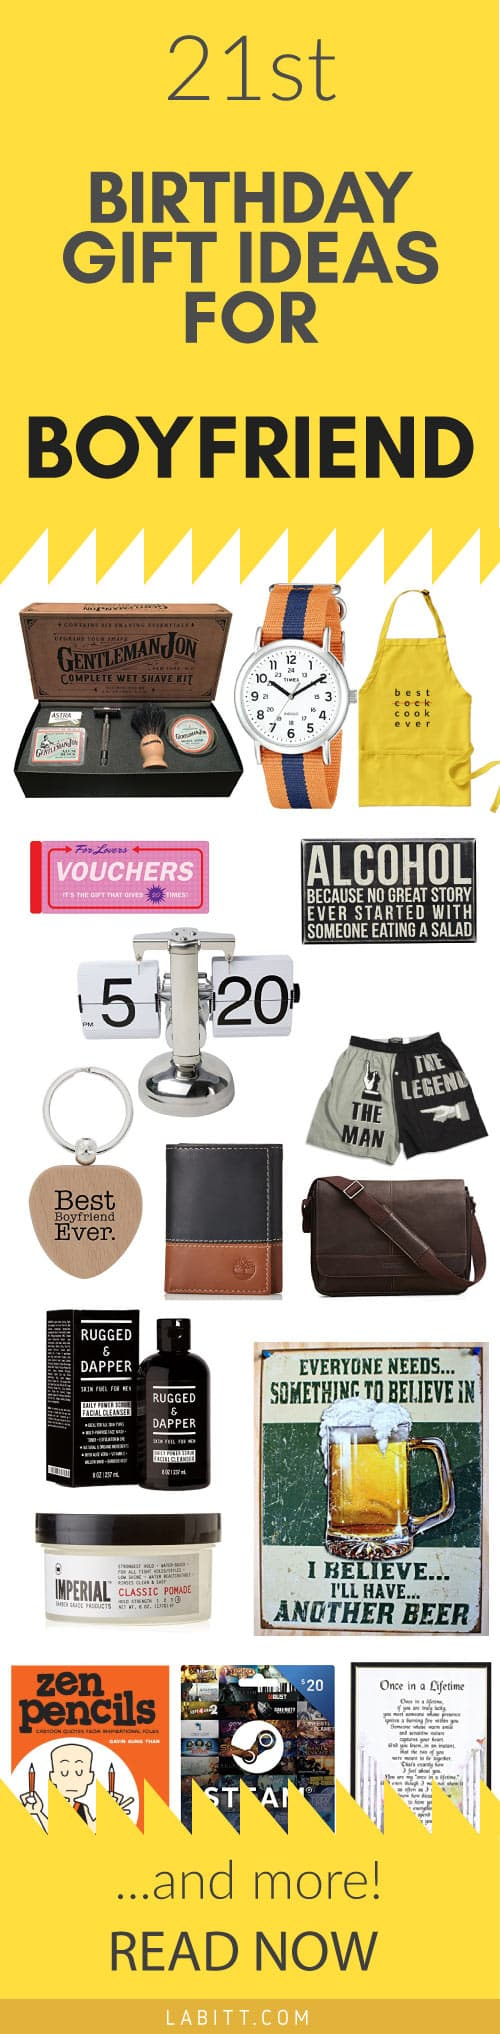 What do you think of these 21st birthday gift ideas for boyfriend? Let me know in the comment section below.